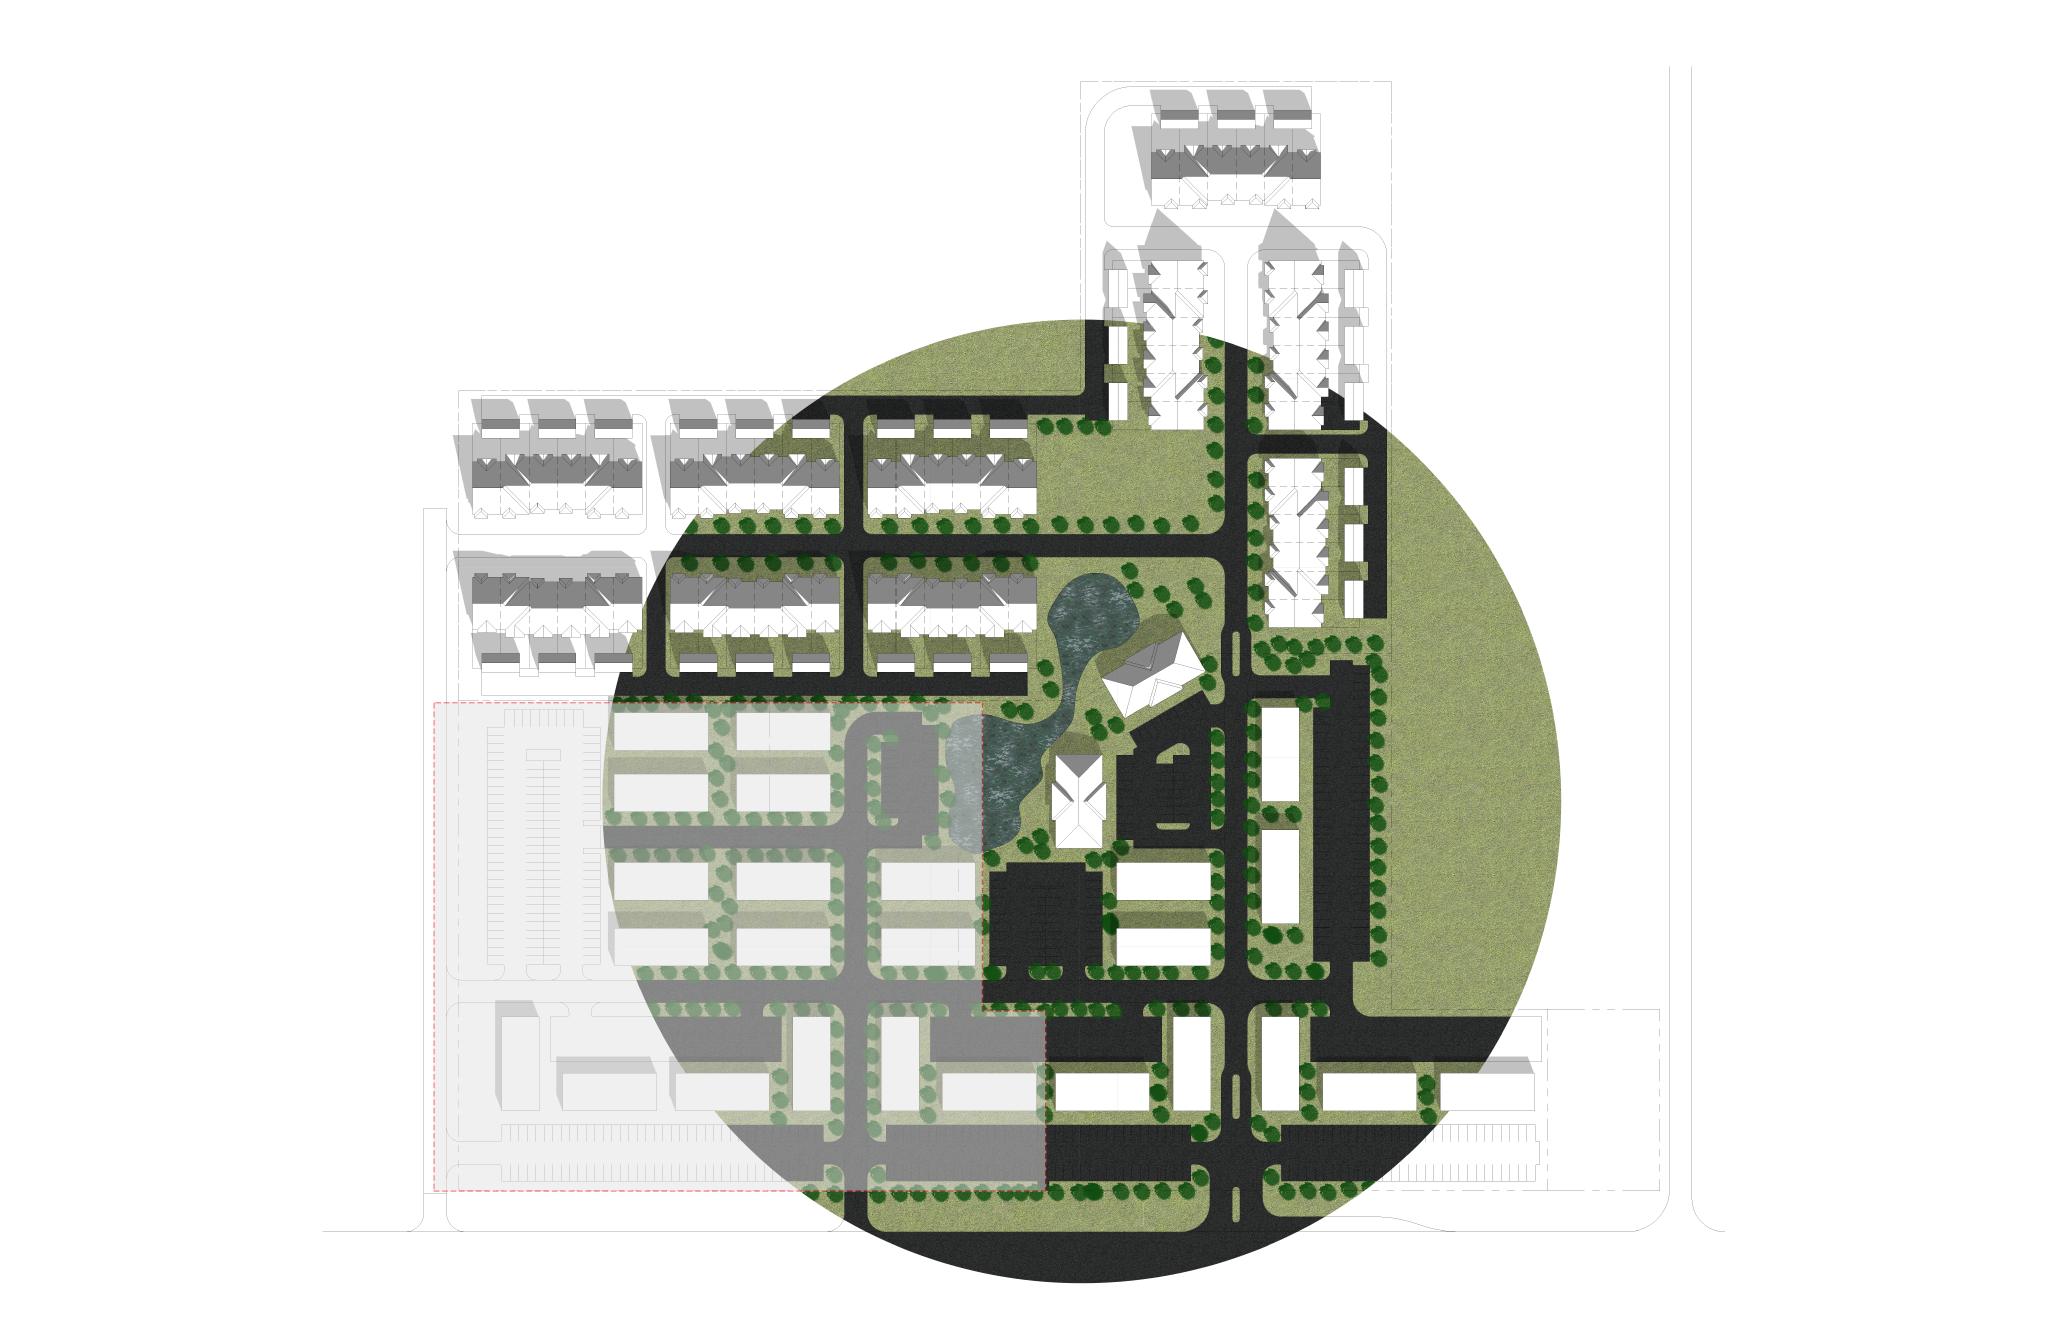 Planning - With our planning services, we can help bring your big ideas to life. We provide Master Planning and Feasibility Studies, and can advise on Opportunity Zone development.